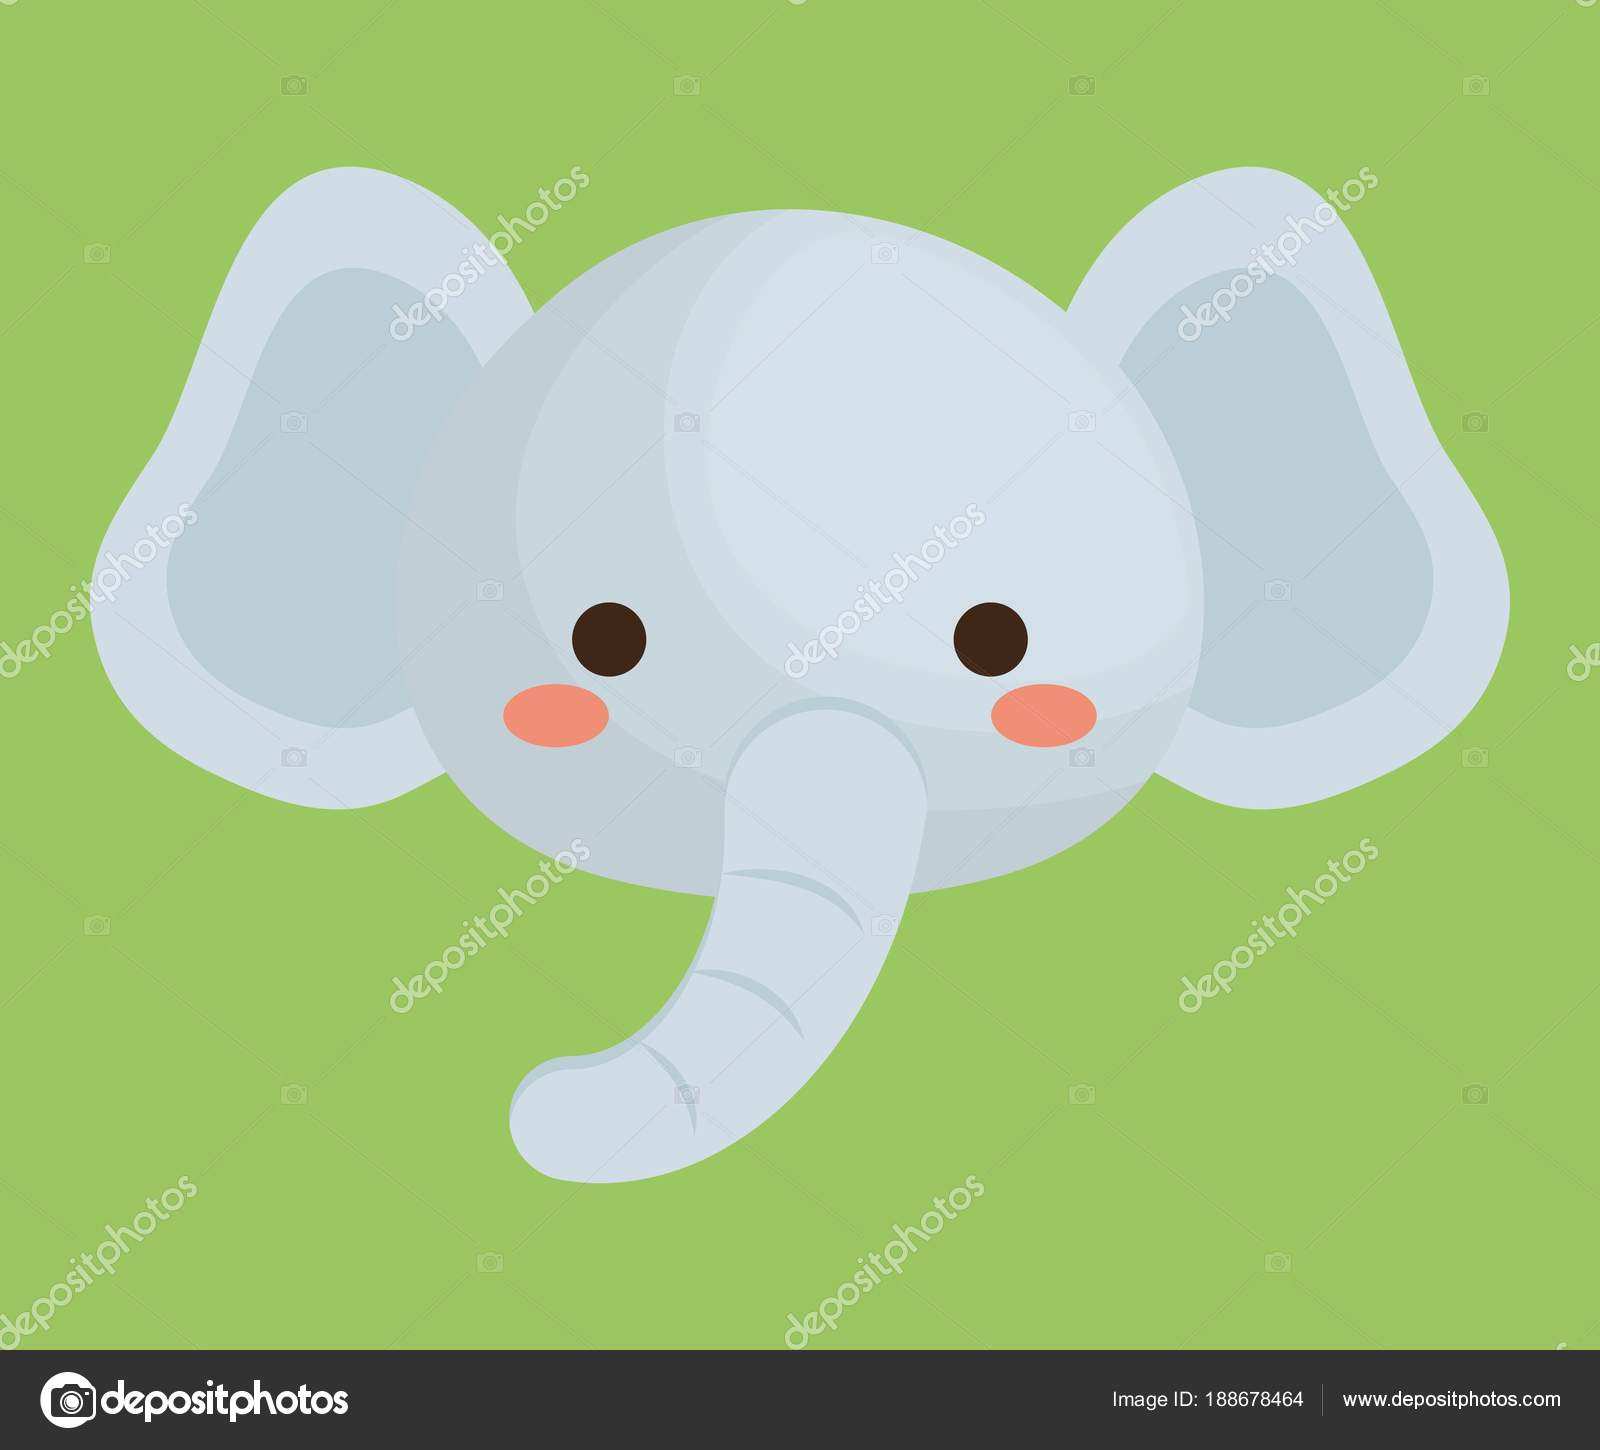 Cute Animals Design Stock Vector Djv 188678464